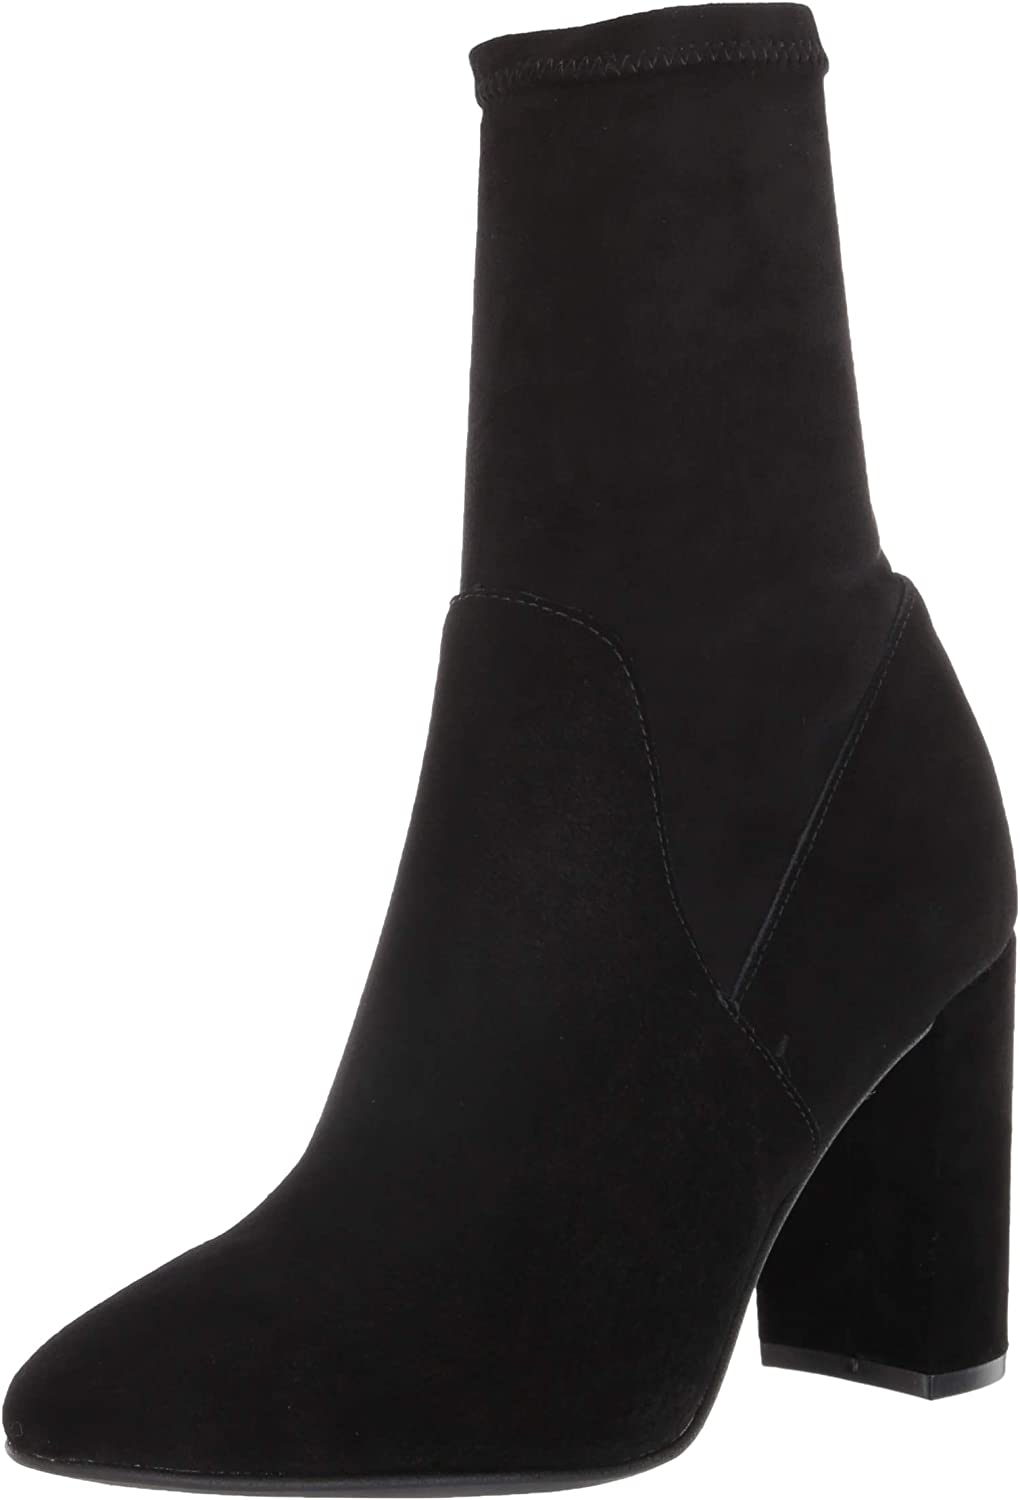 Chinese Laundry Women's Kayla Ankle Boot